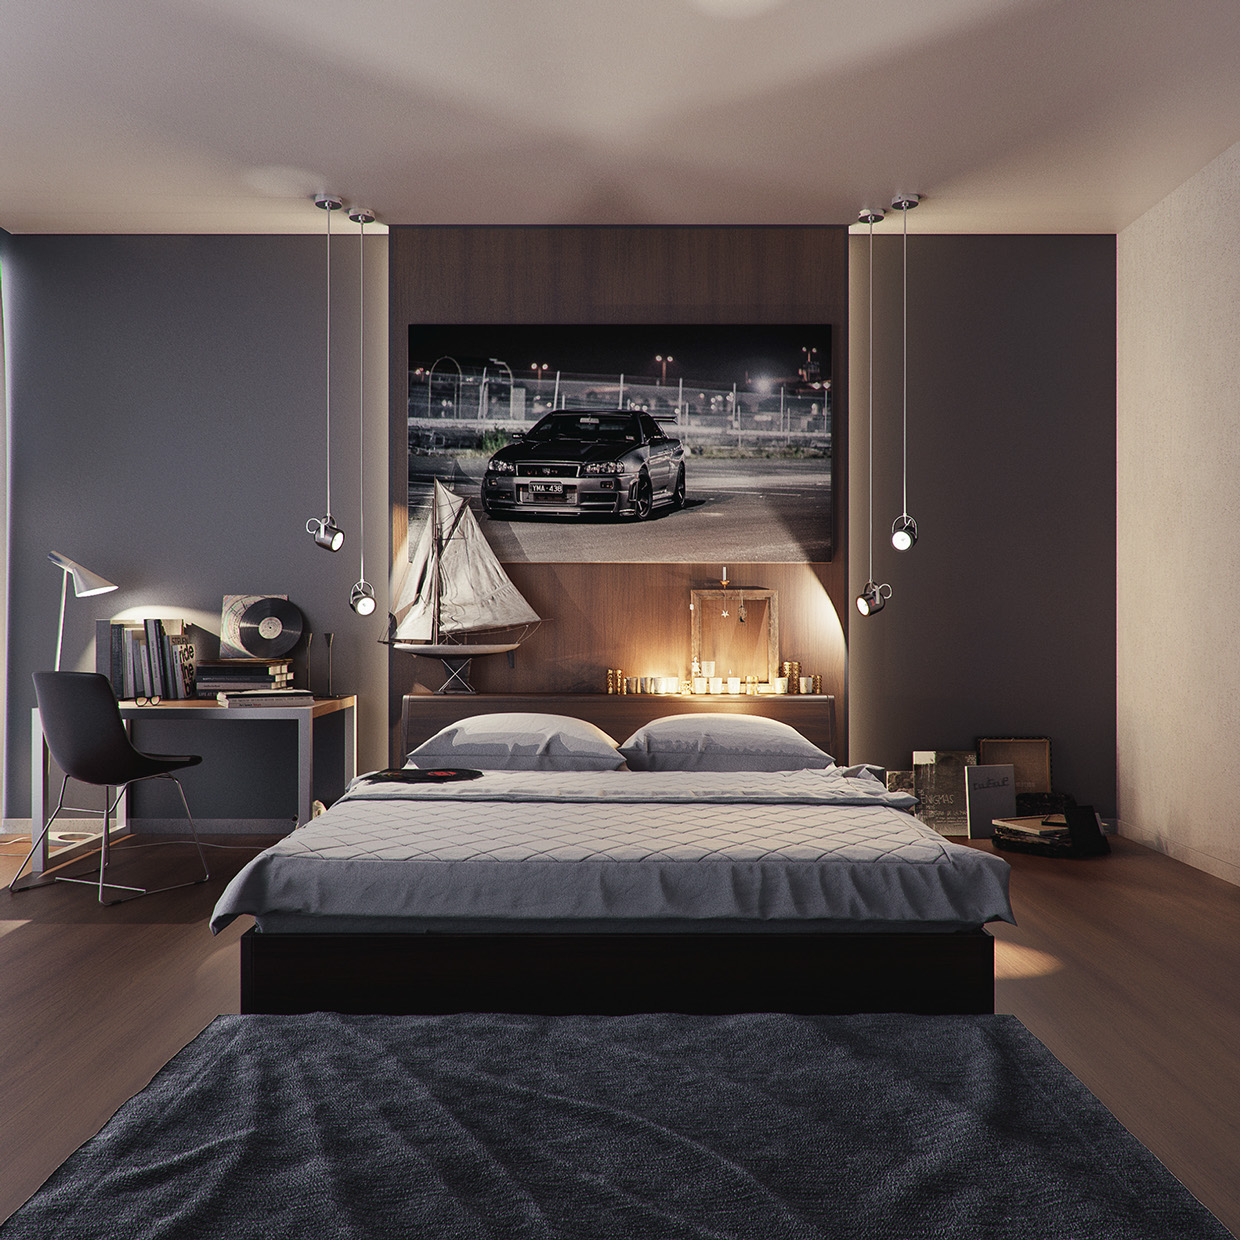 Visualizer Projek F A Man No Matter What His Age Needs E To Call Own This Masculine Bedroom In Dark Grays And Silvery Accessories Belie